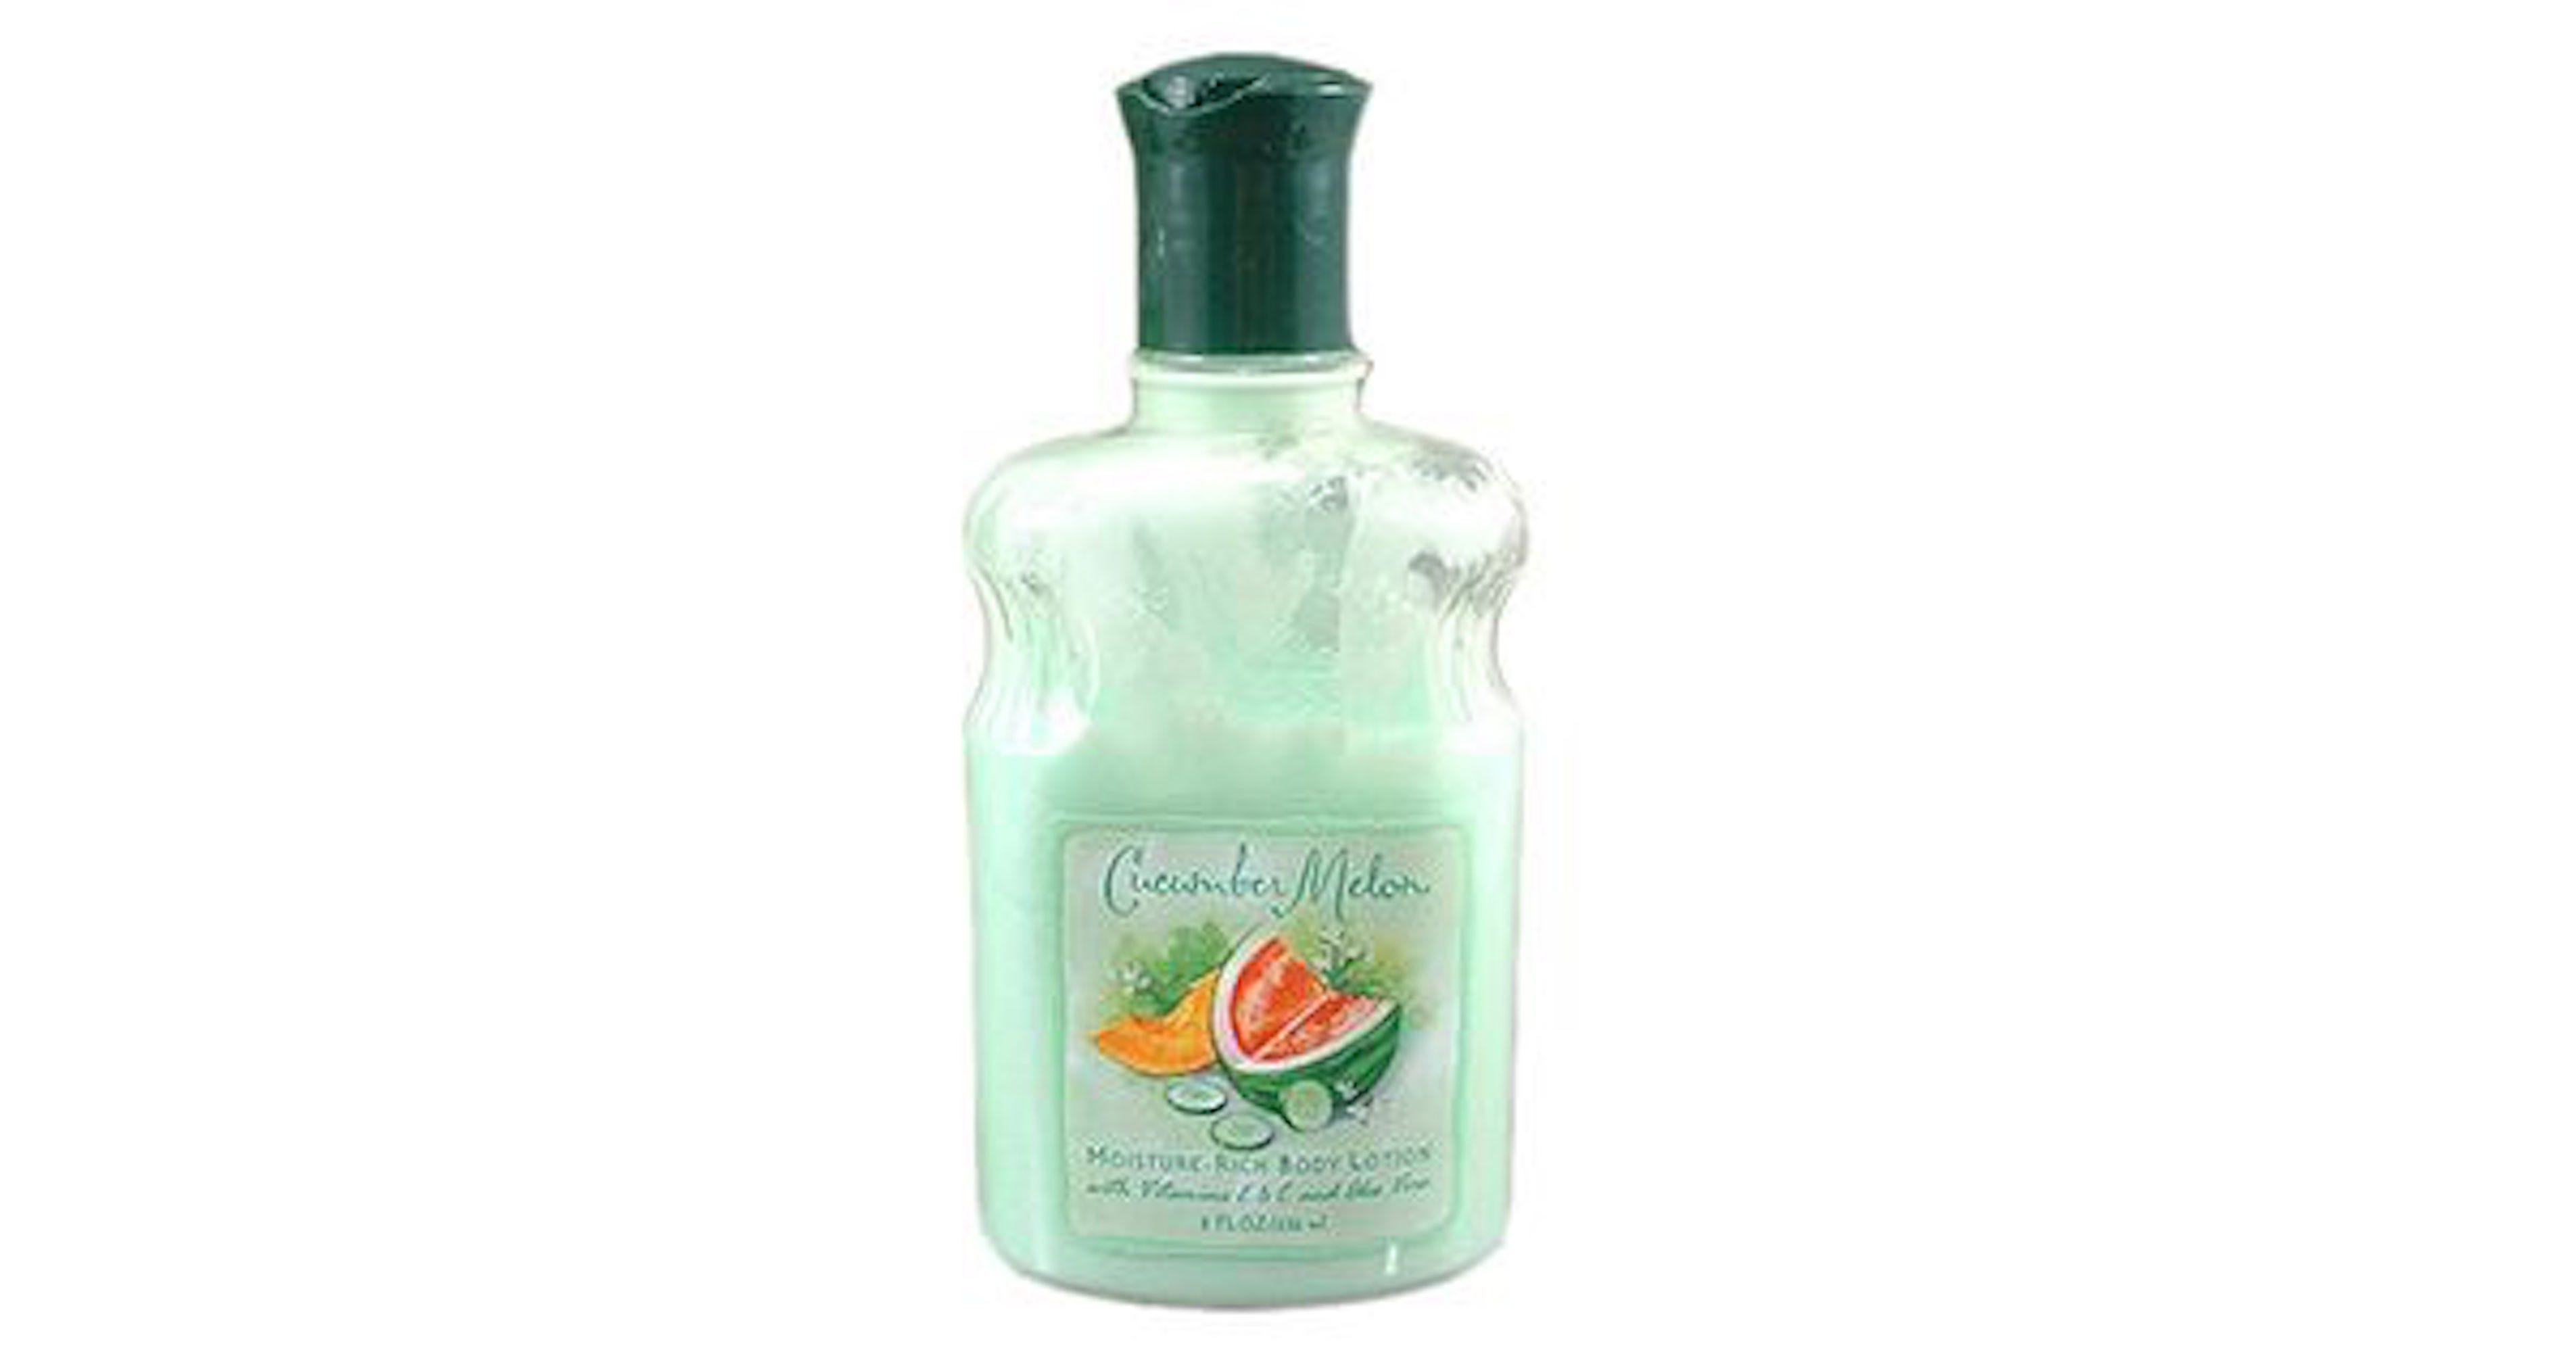 Bath Body Works Coco Shea Lotions Classic Scents